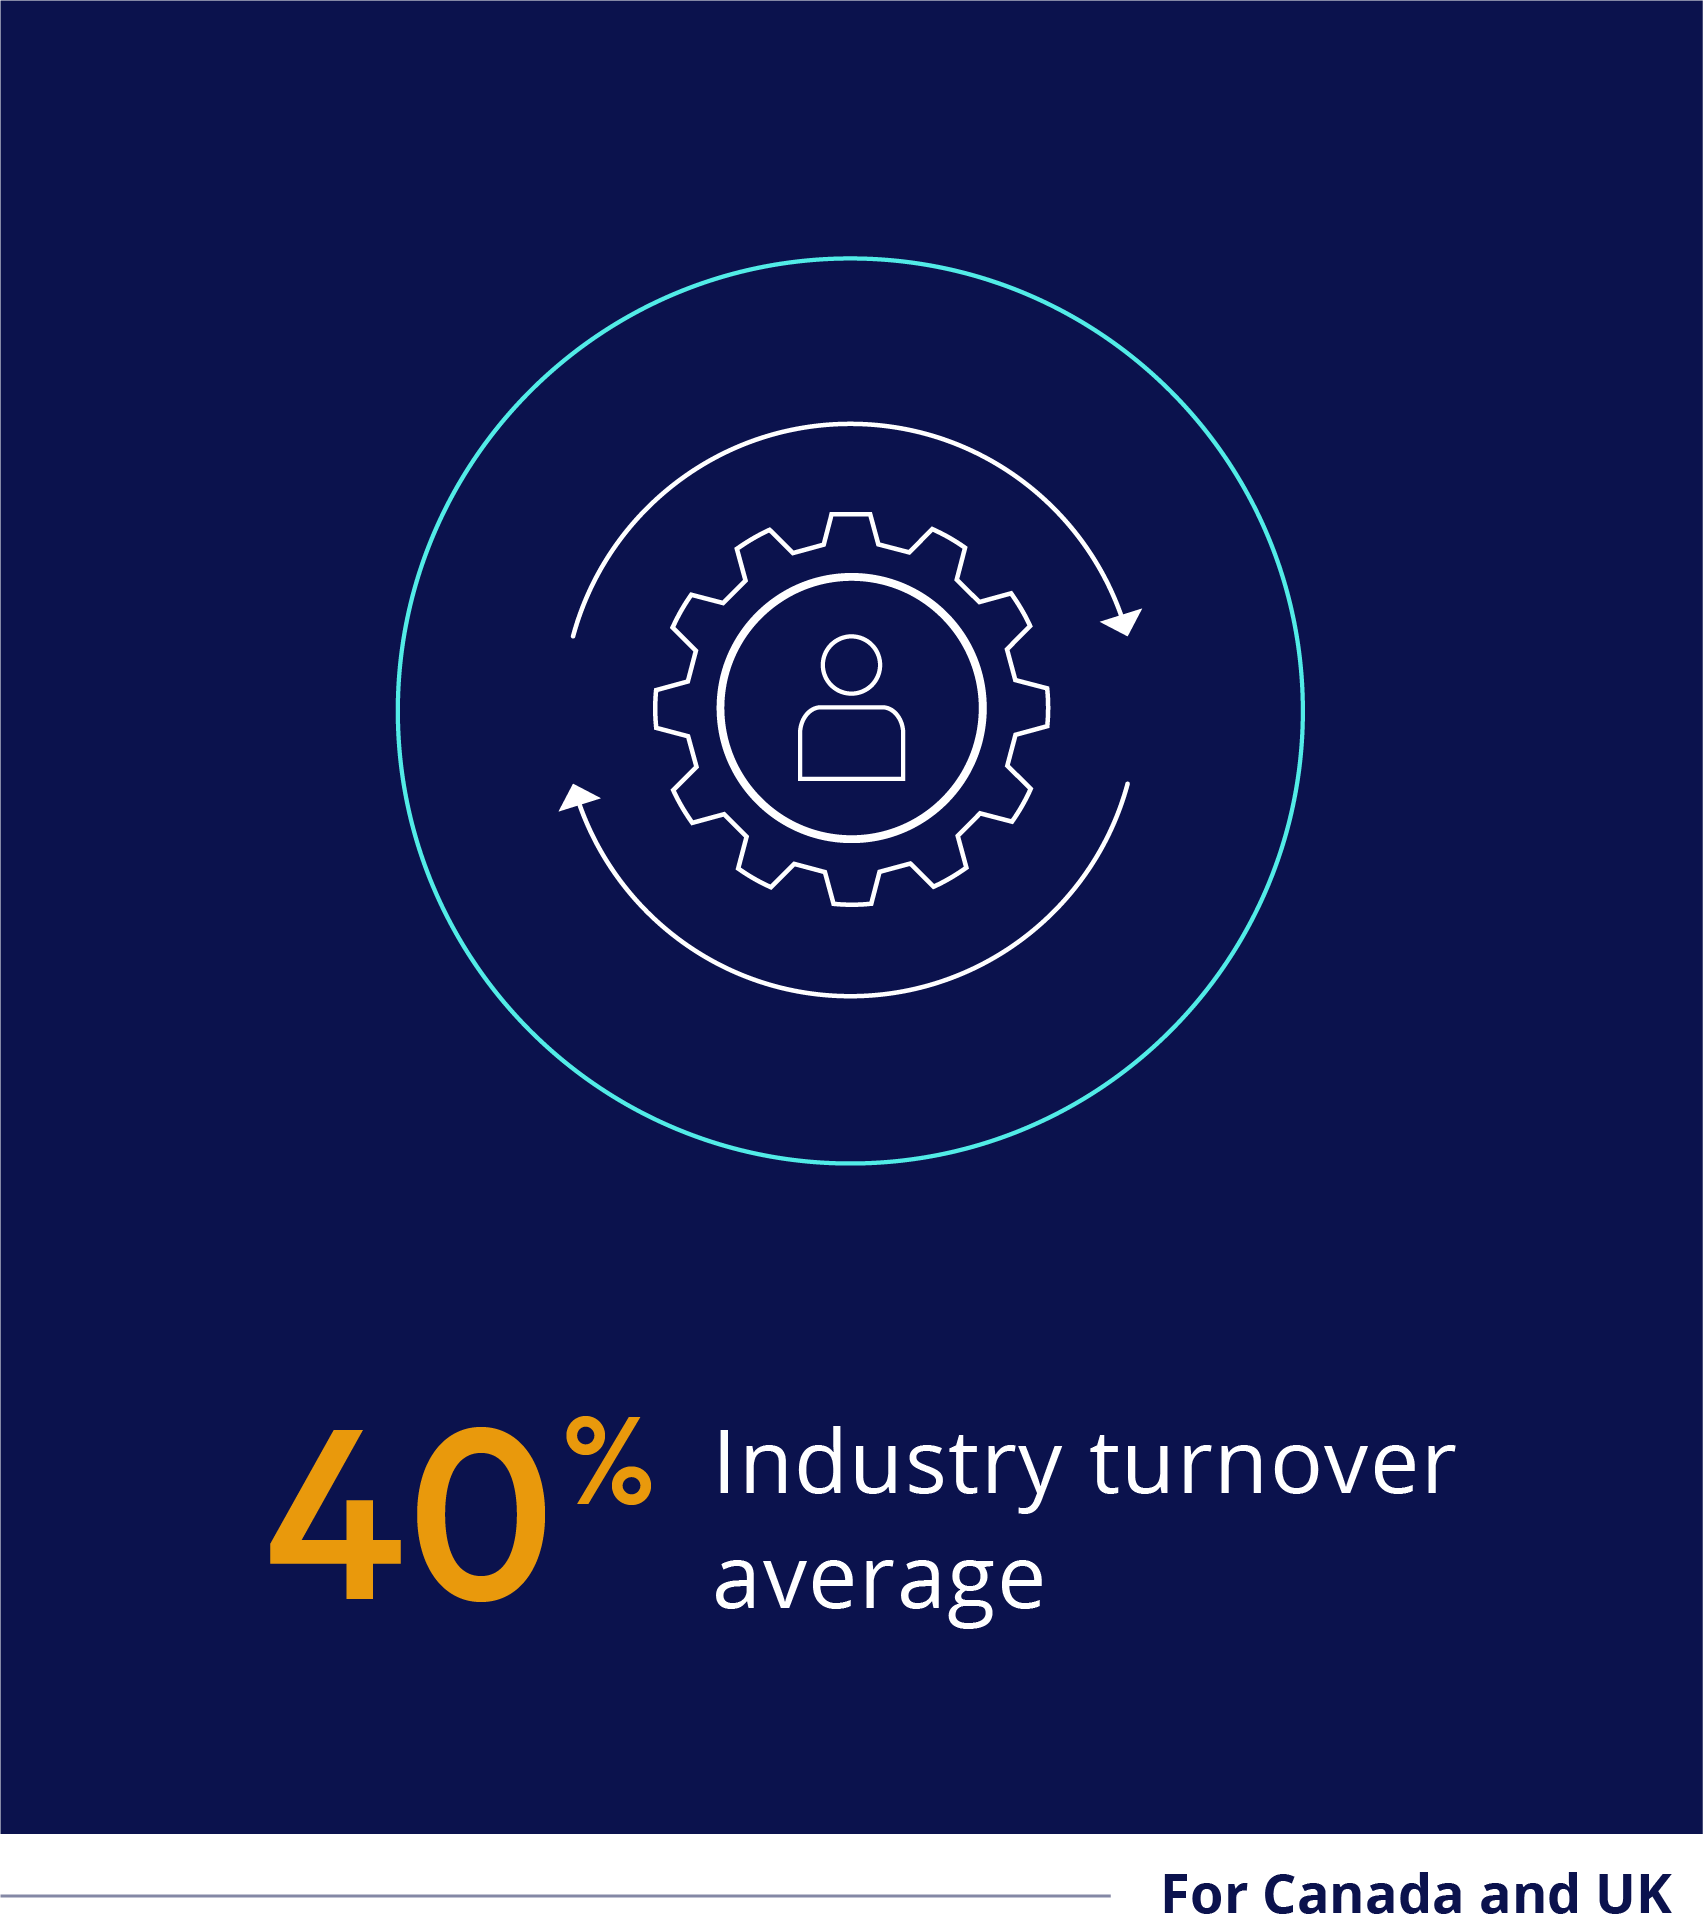 40% industry turnover average